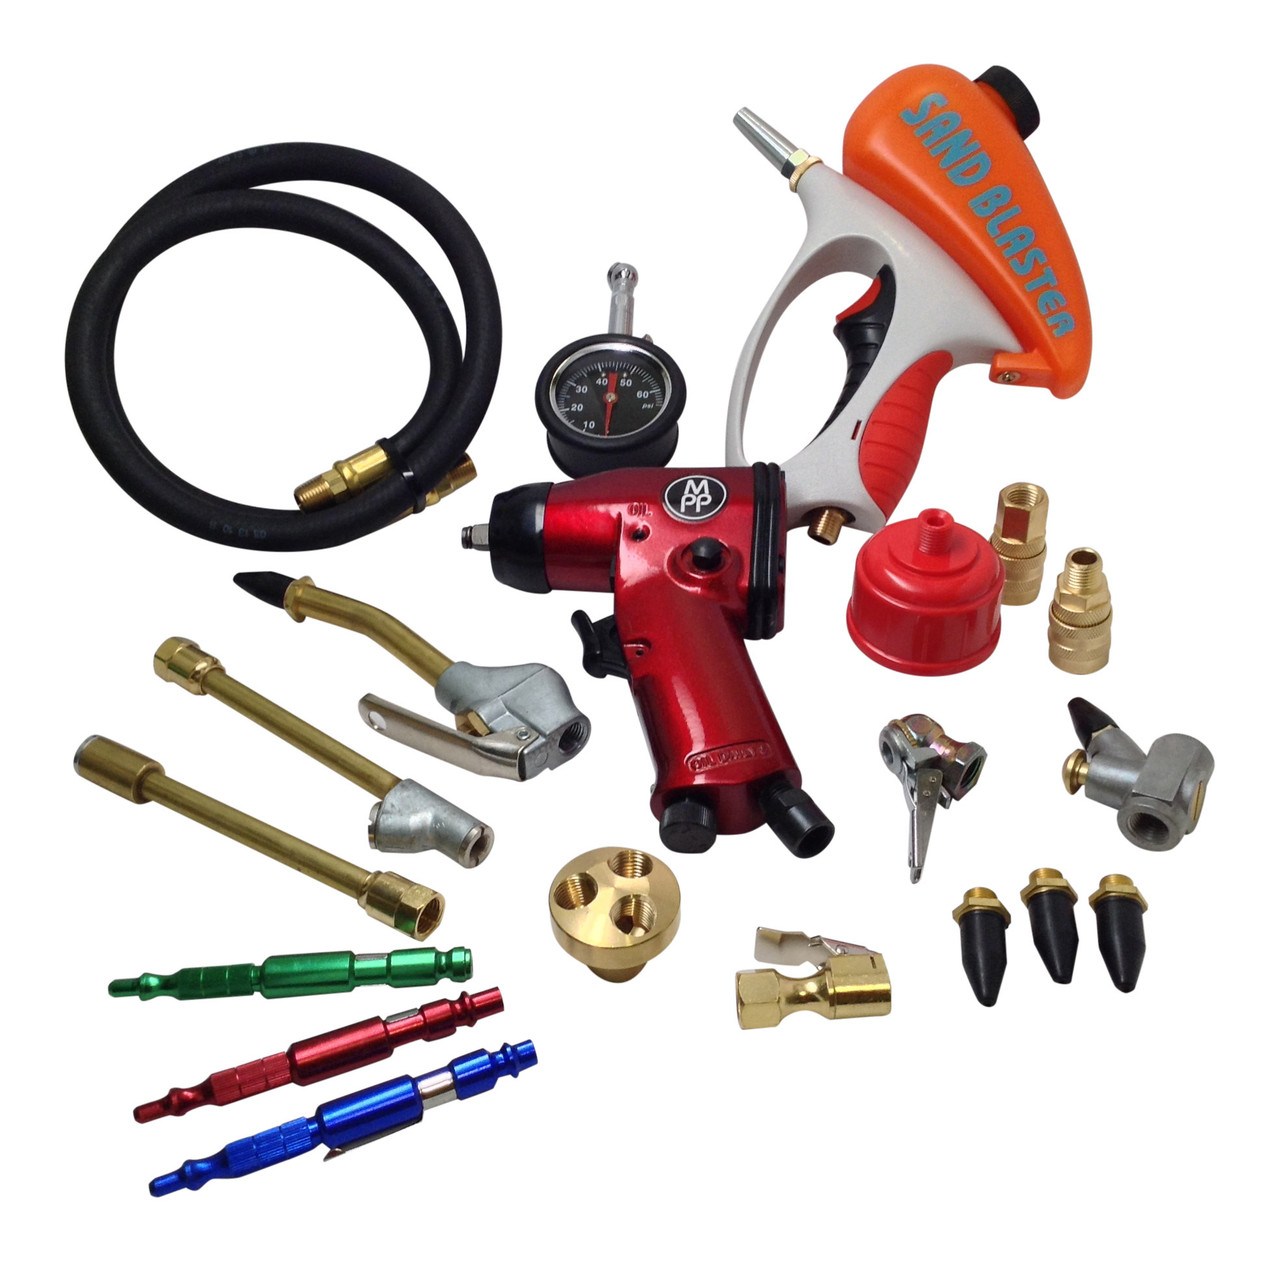 Air Tools and Accessories